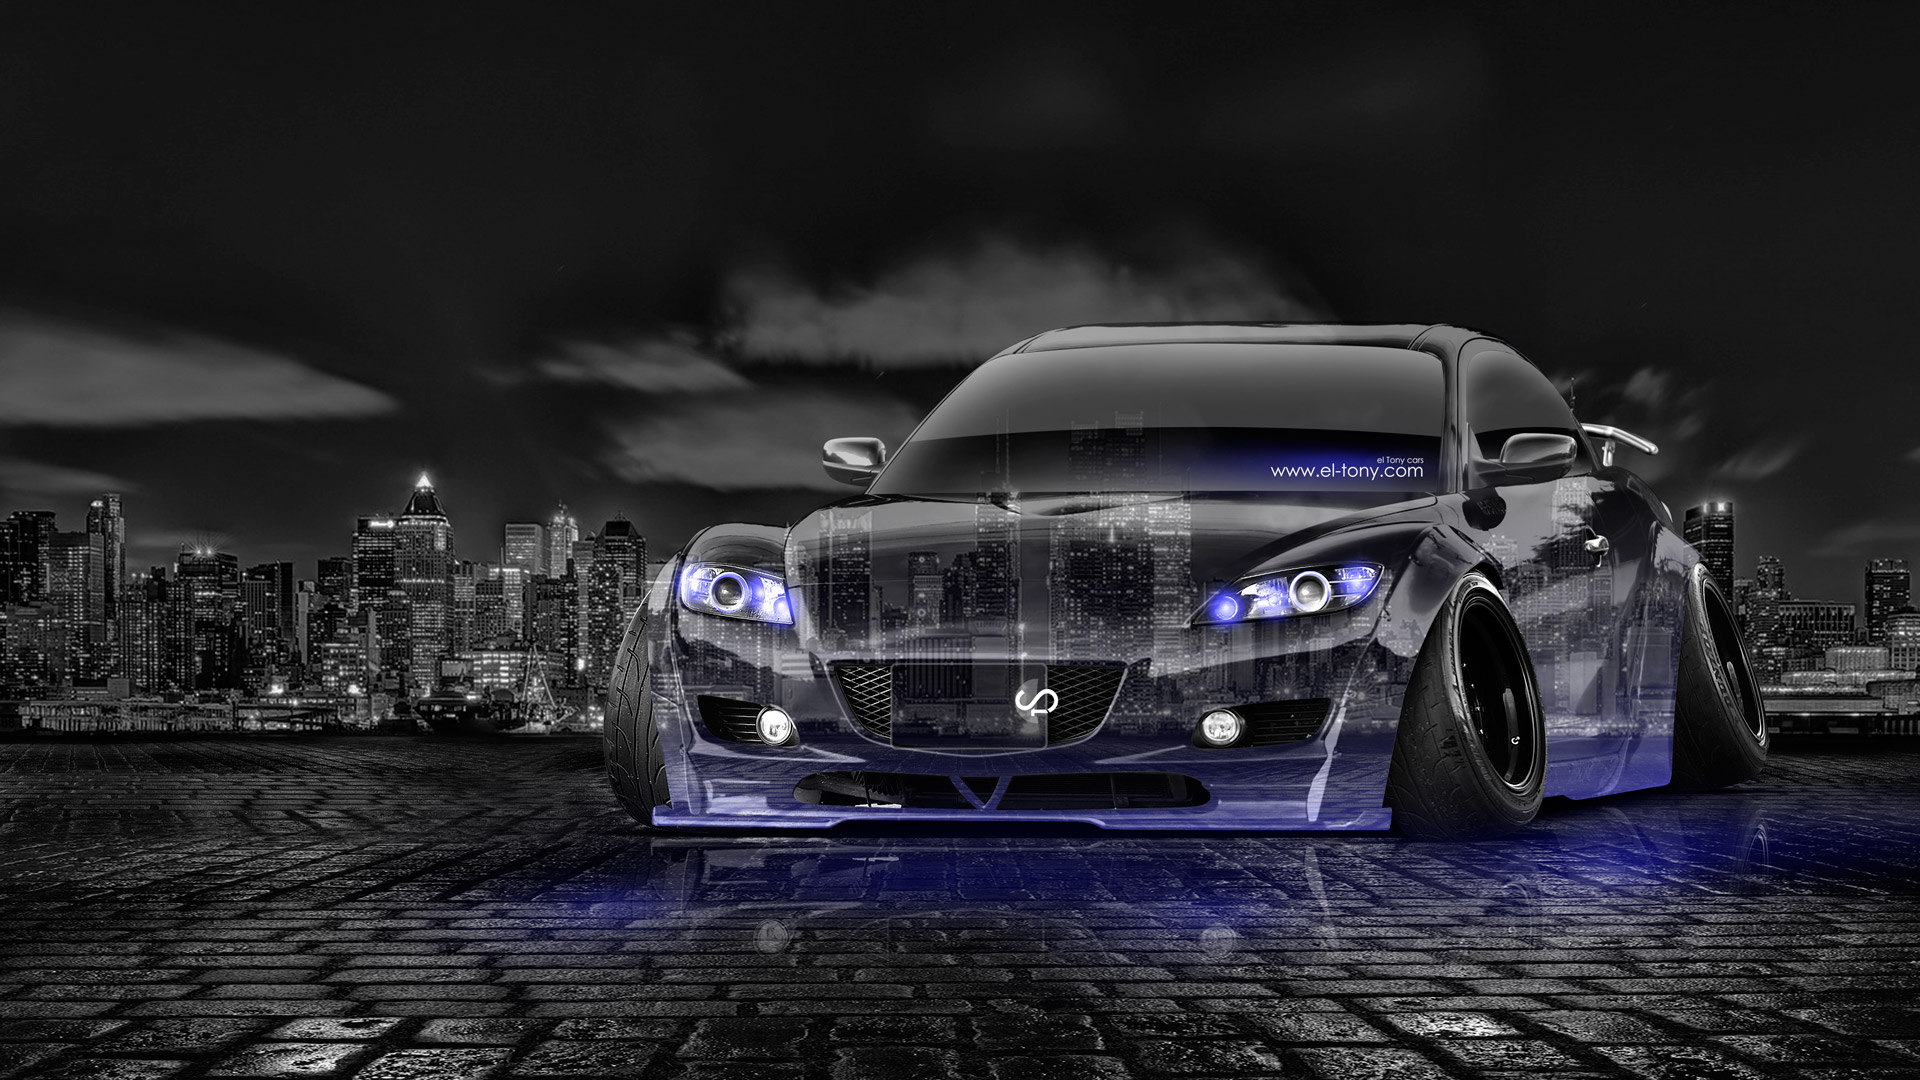 Mazda Rx8 Jdm Tuning Crystal City Car 2014 El Tony